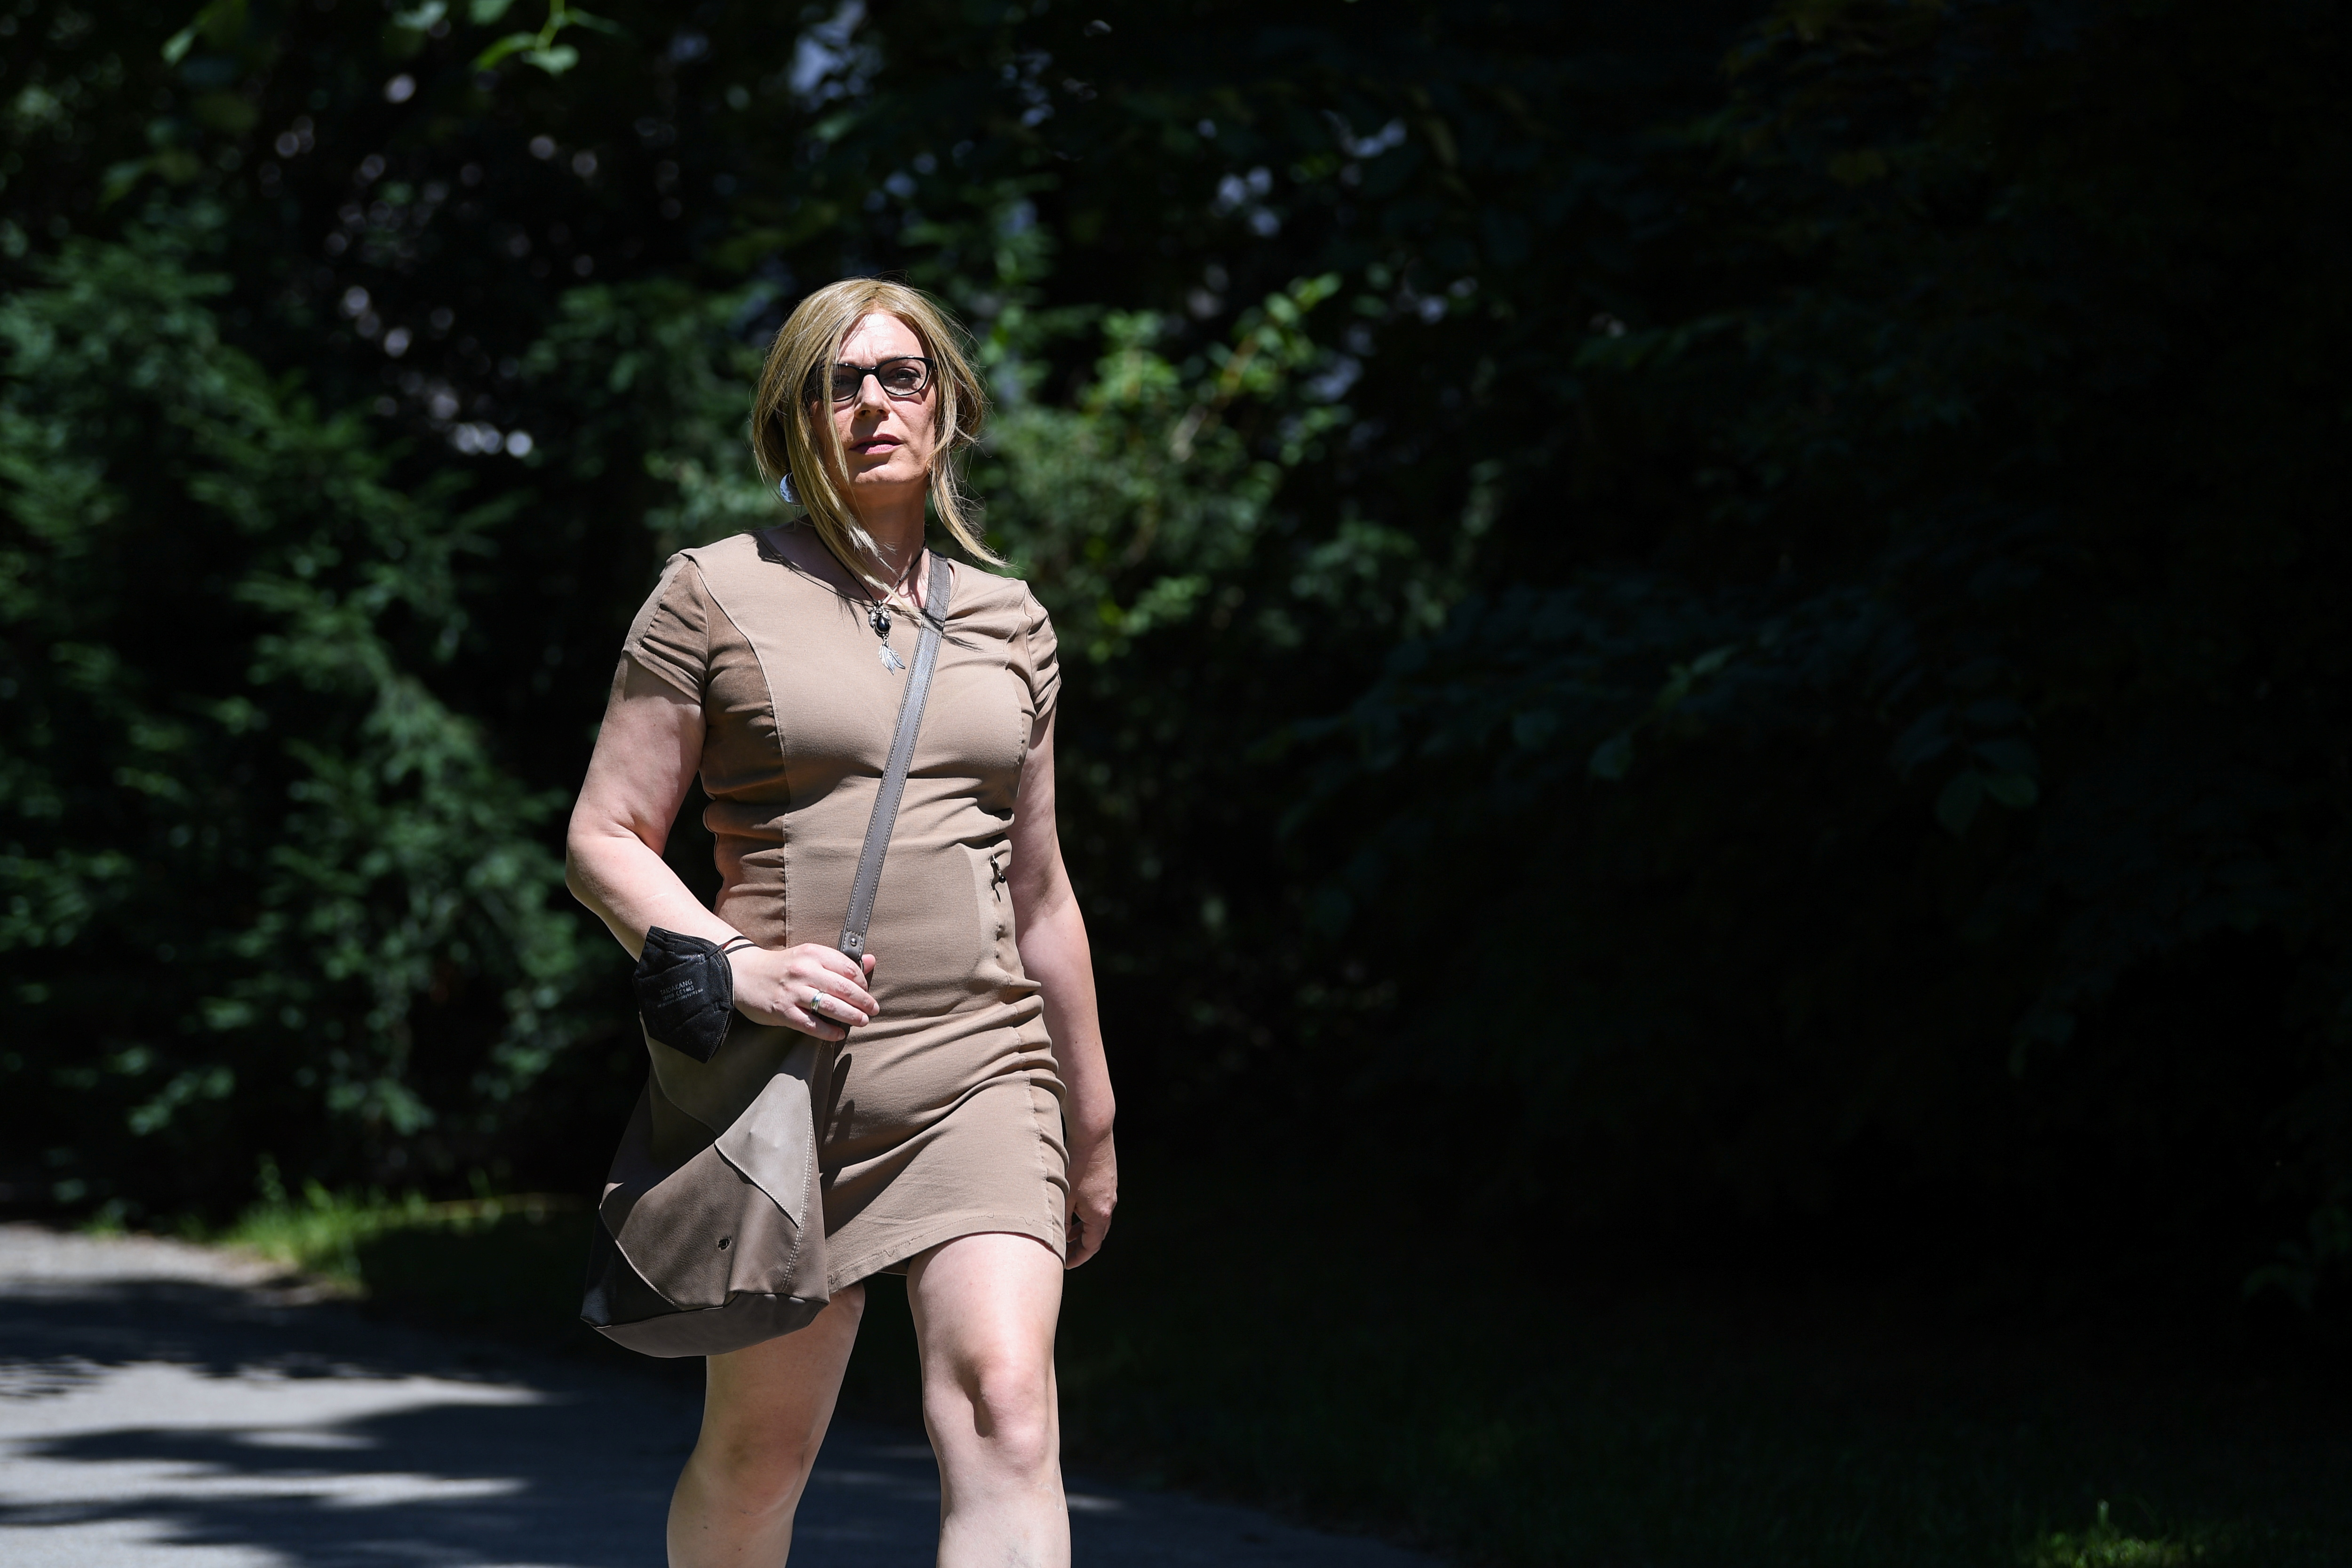 Tessa Ganserer, member of the German Green Party and transgender candidate for the German Bundestag elections walks from her office to the Parliament during a Reuters TV interview in Munich, Germany, July 6, 2021. REUTERS/Andreas Gebert